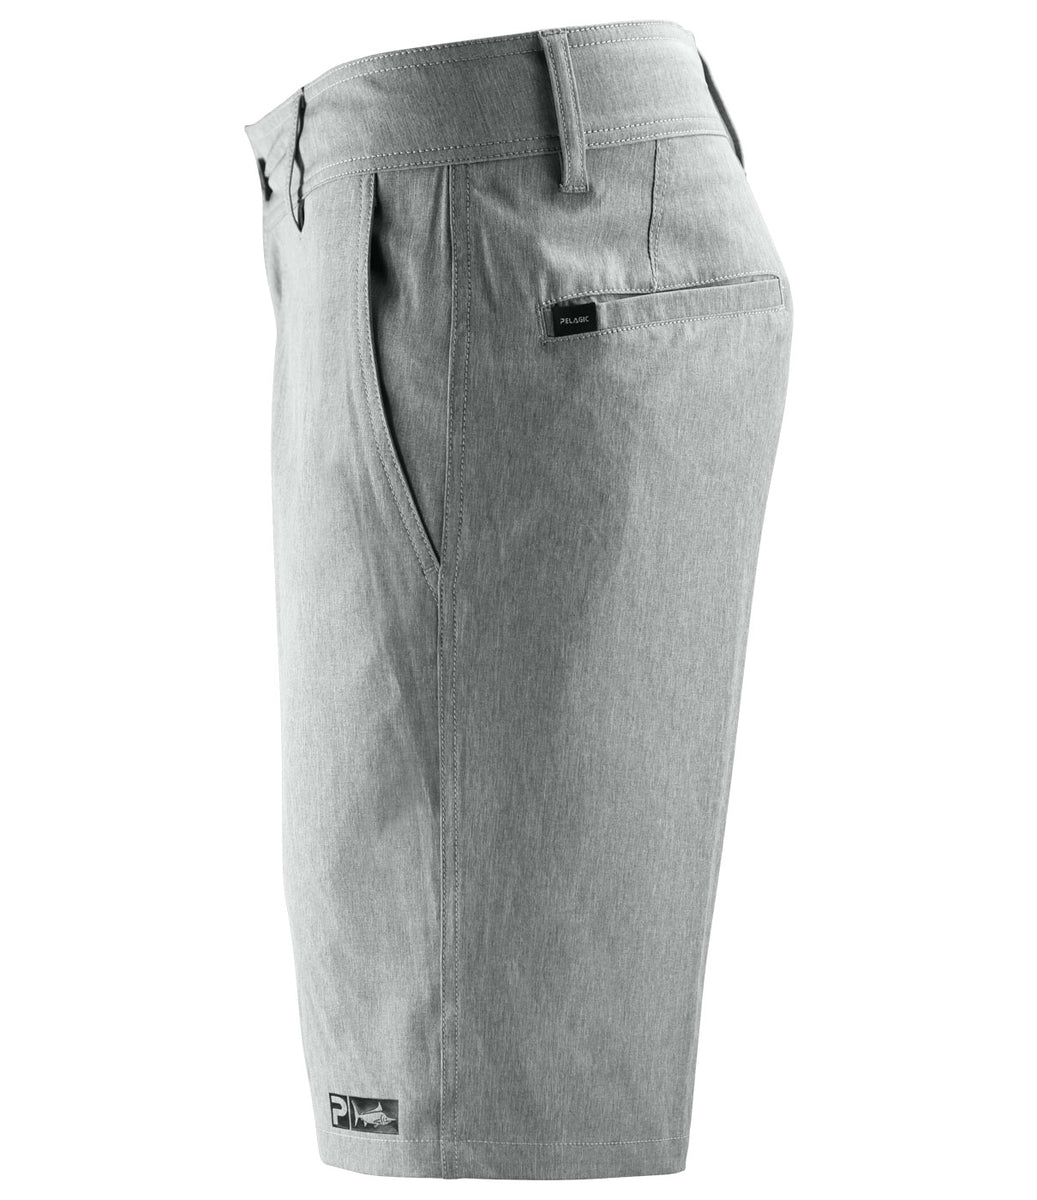 Deep Sea Hybrid Fishing Shorts - Youth Big Image - 12